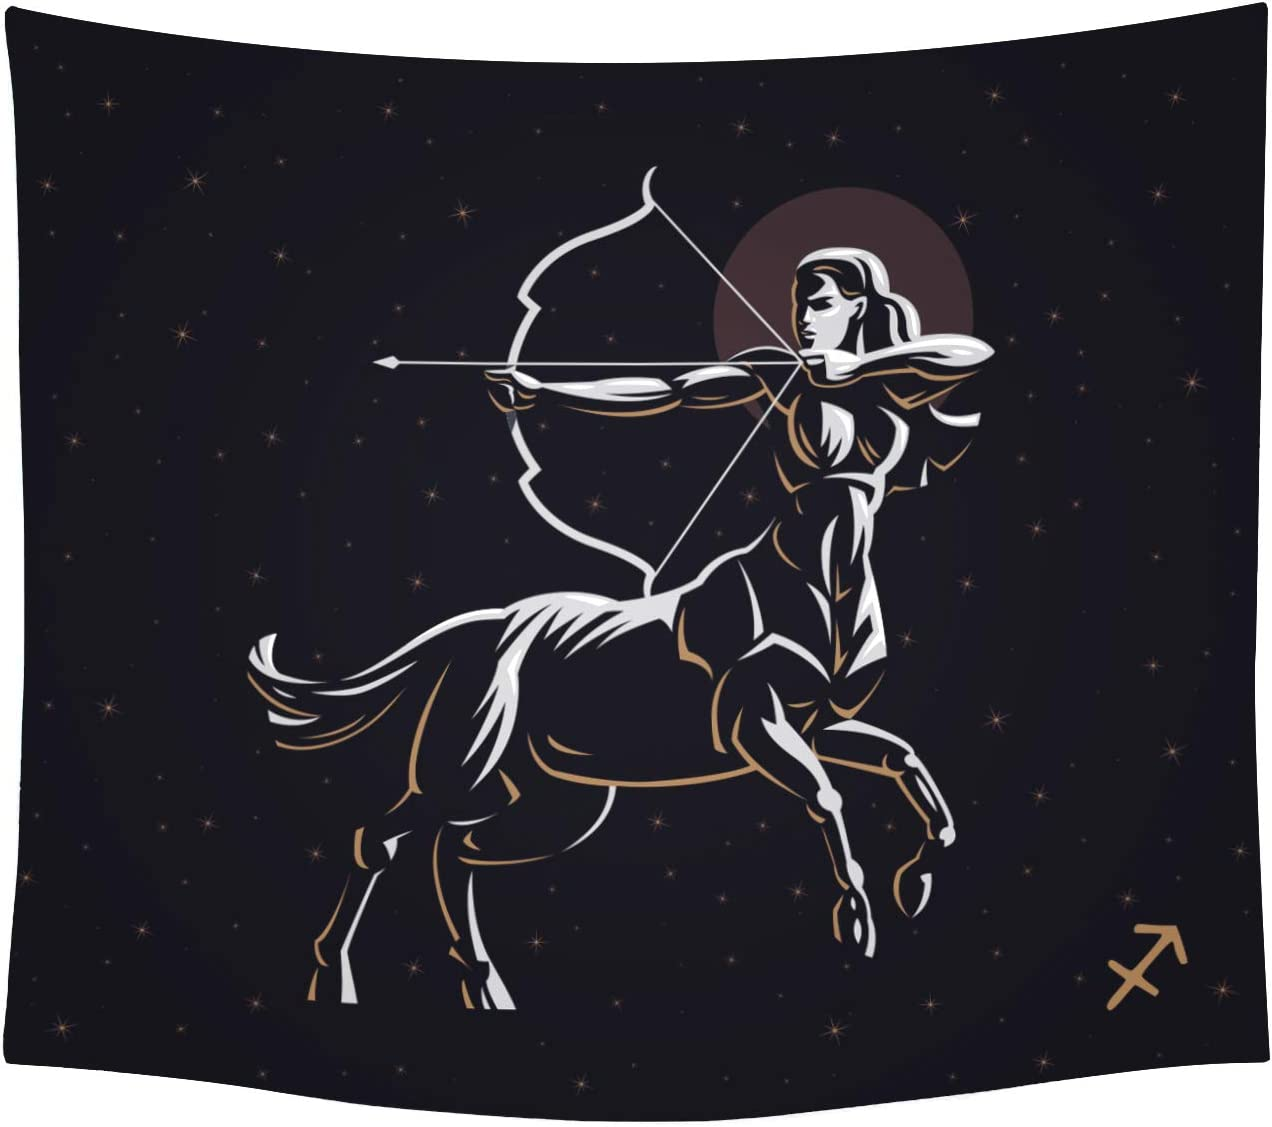 THE UNIVERSAL SIGNS Astrology Horoscope Zodiac Tapestry Decor Wall Hanging Sagittarius Blanket Bedspread Beach Towels Picnic Mat Home Decor